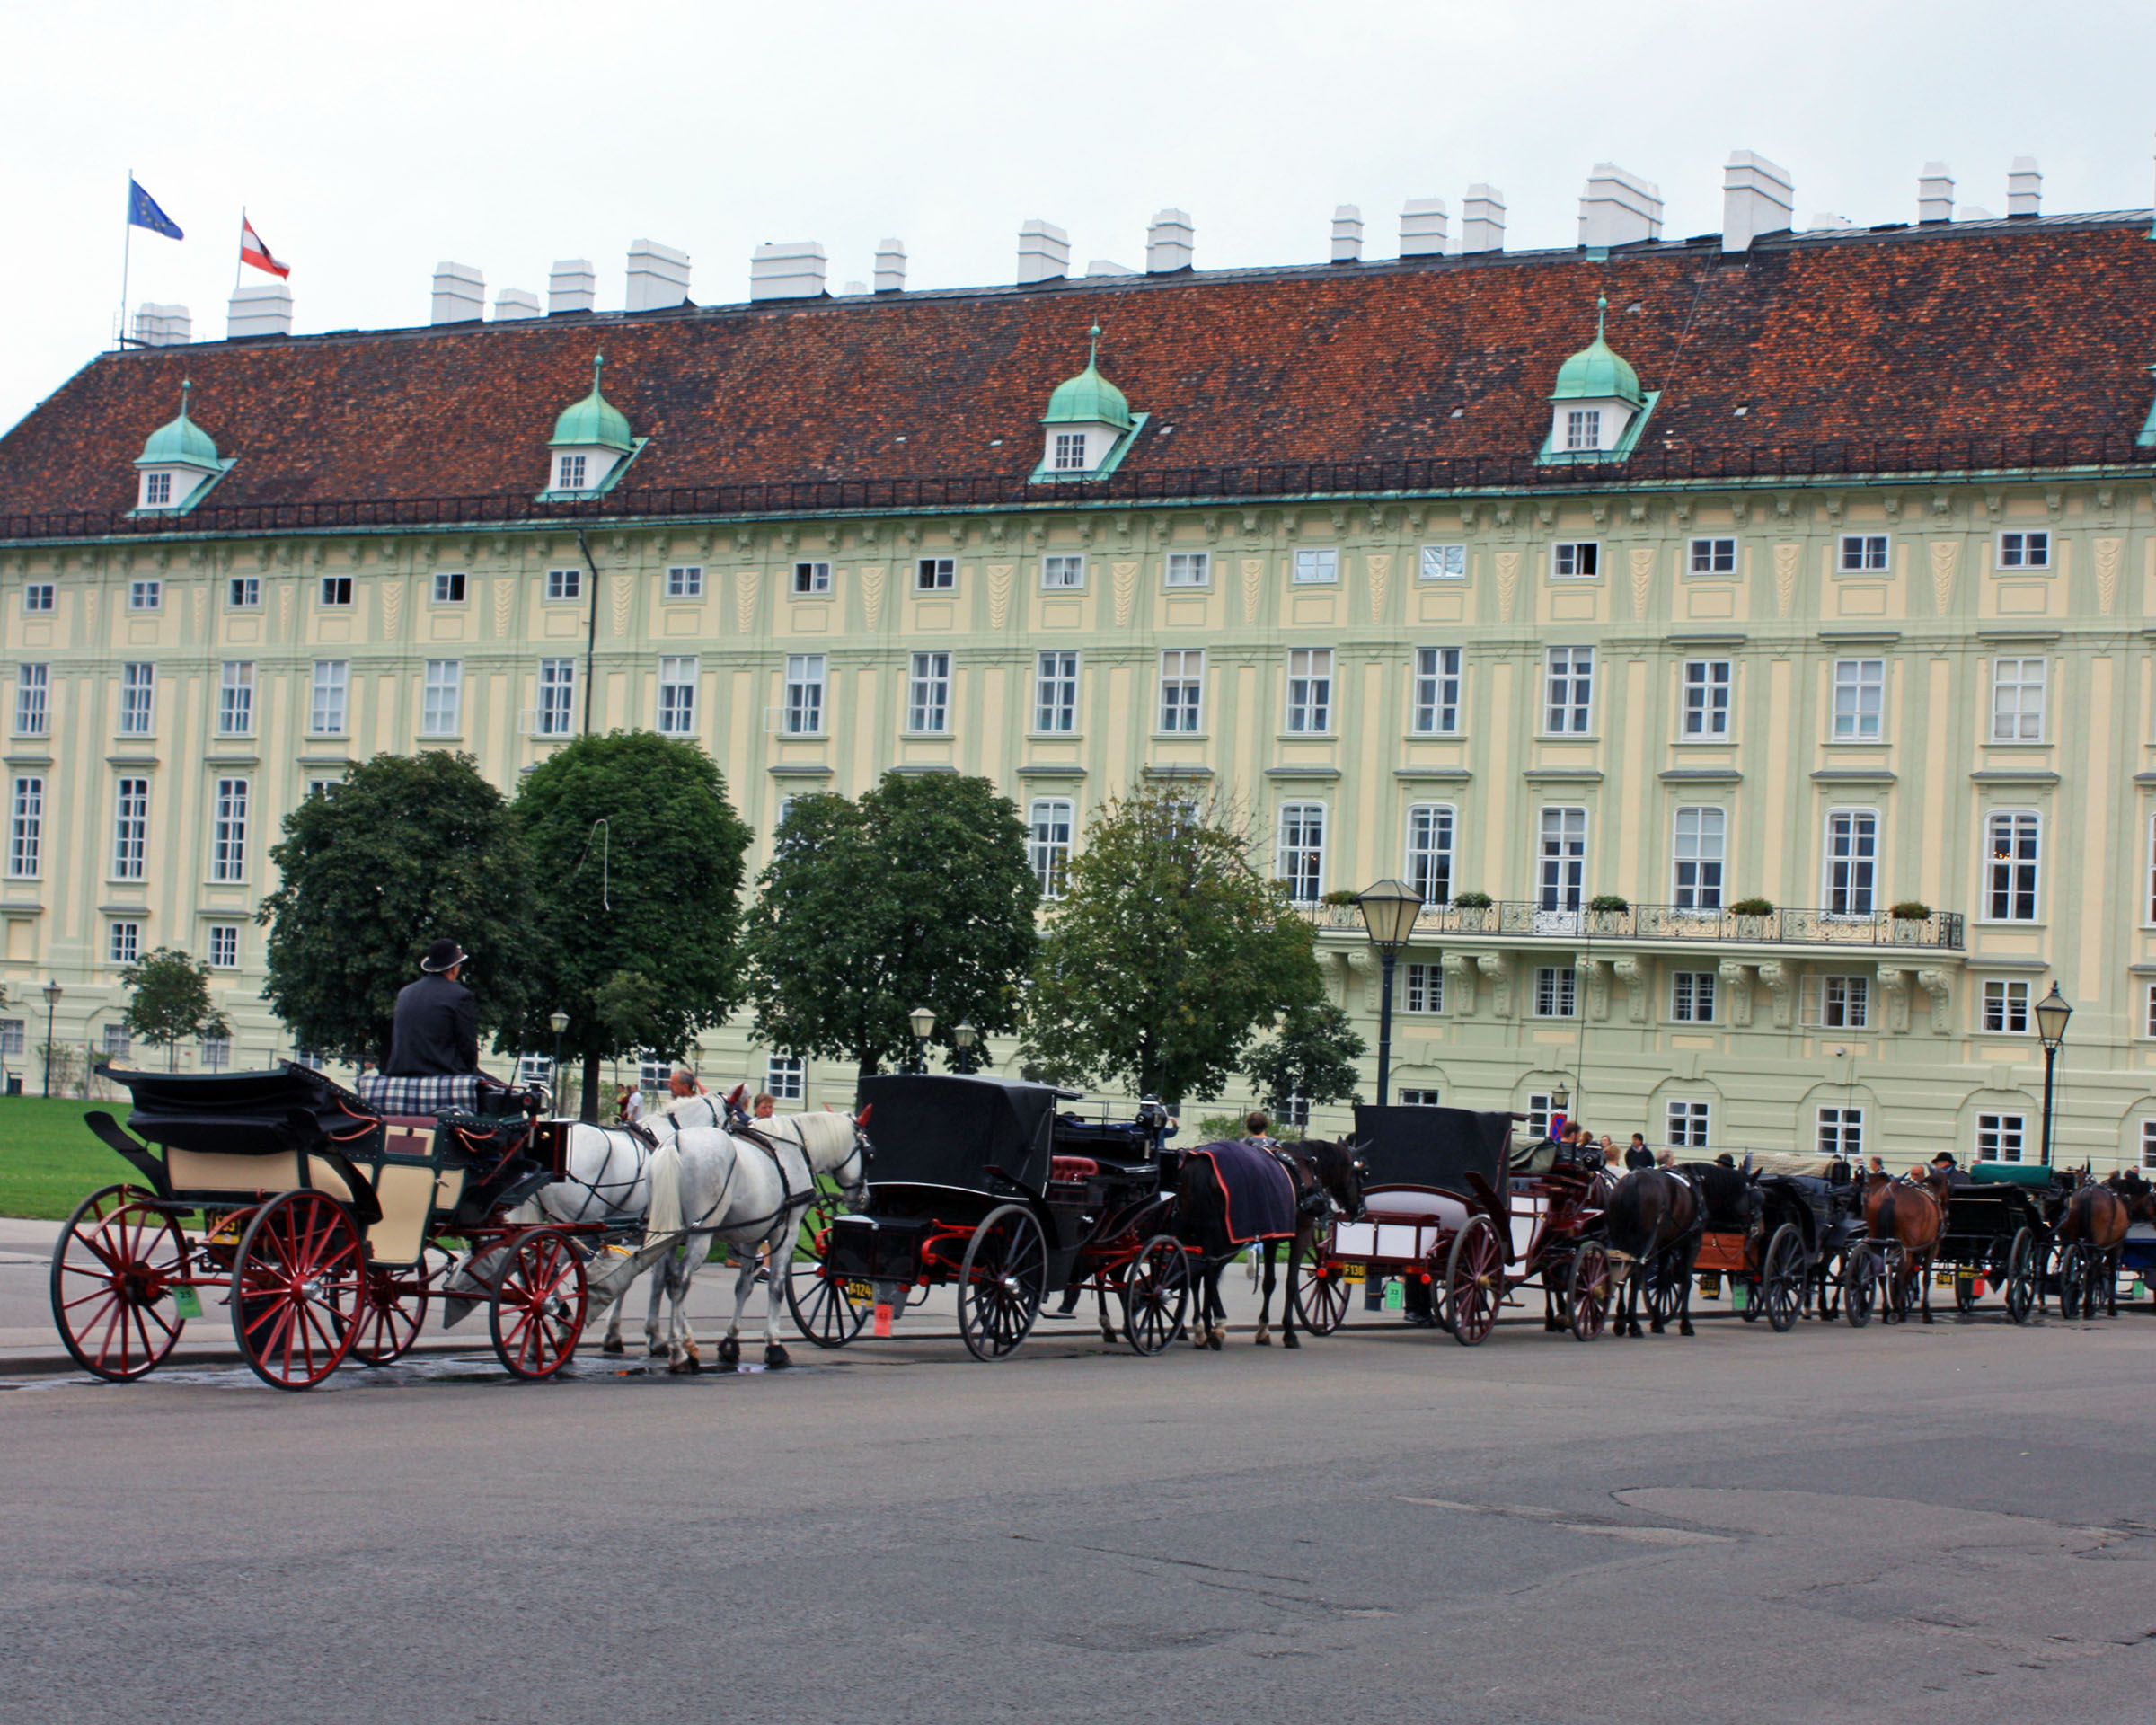 Horse-drawn carraiges line up outside of Hofburg Palace.